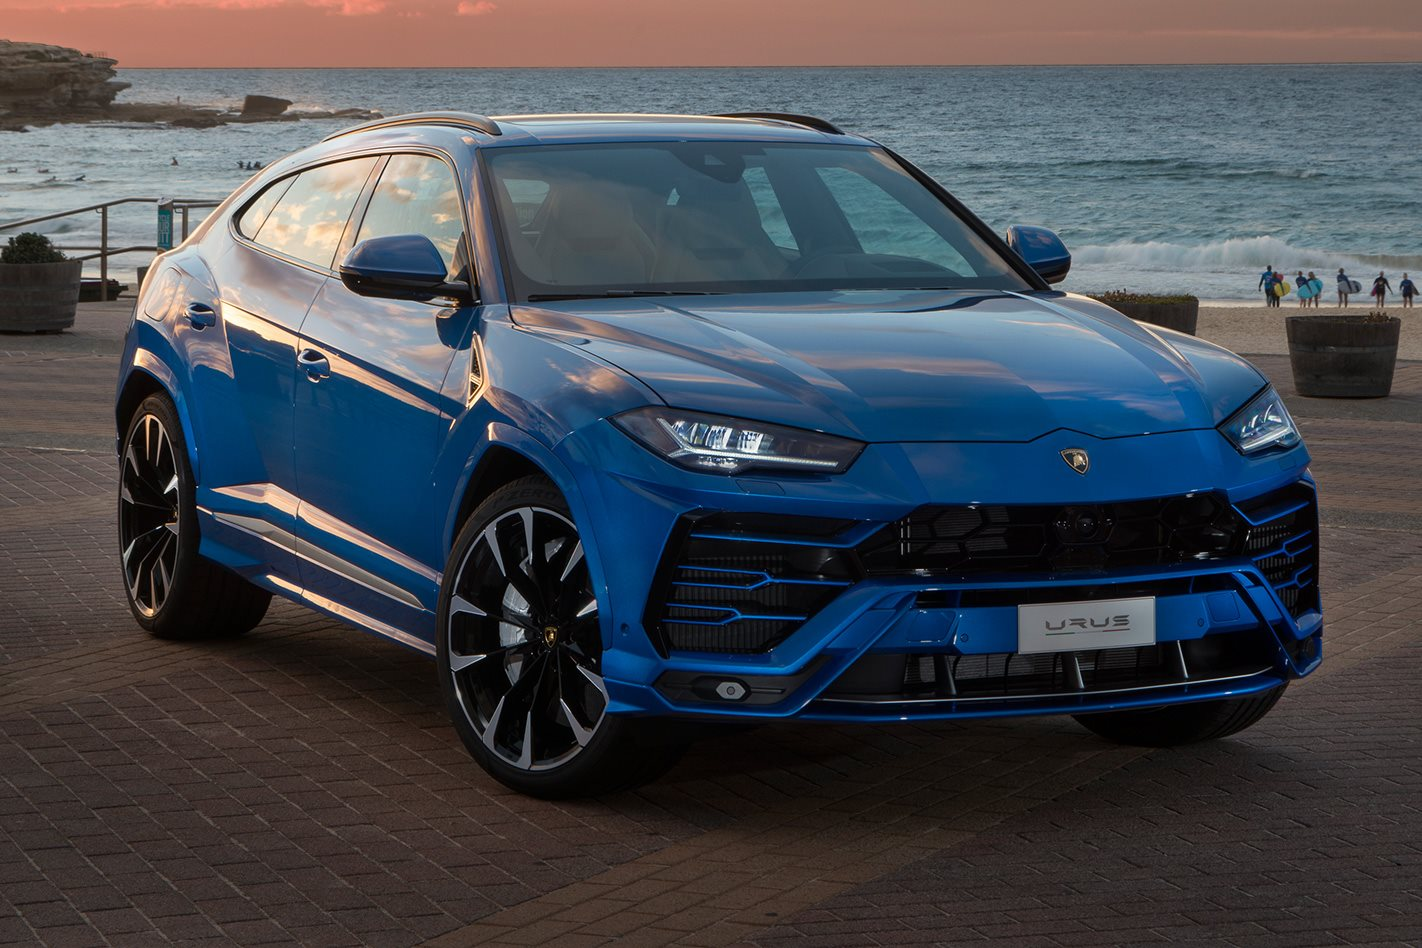 2018 Lamborghini Urus Arrives Just In Time For Christmas